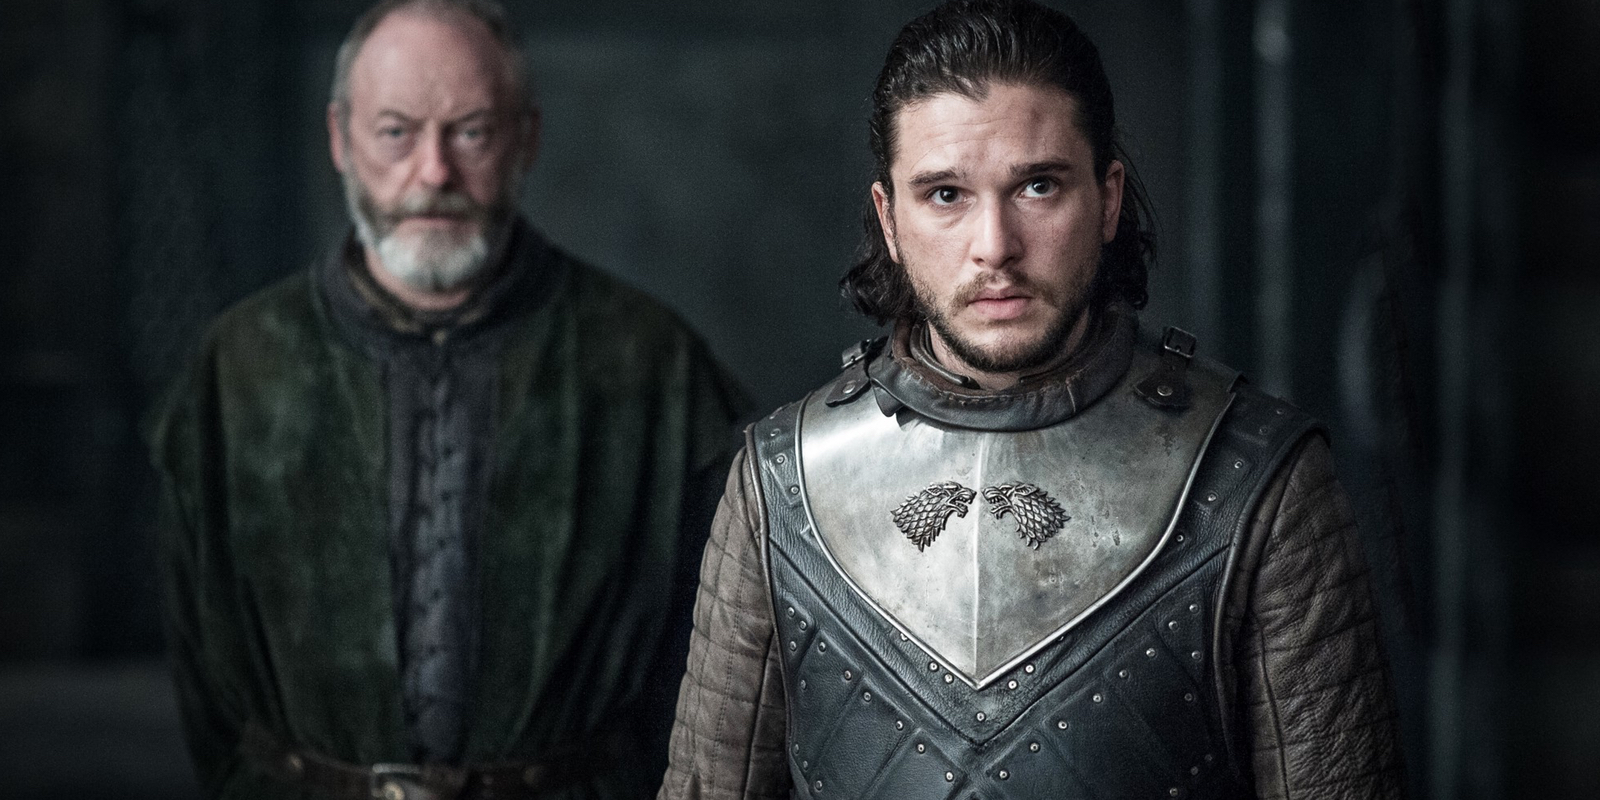 Liam Cunningham and Kit Harington in Game of Thrones Season 7 Episode 3